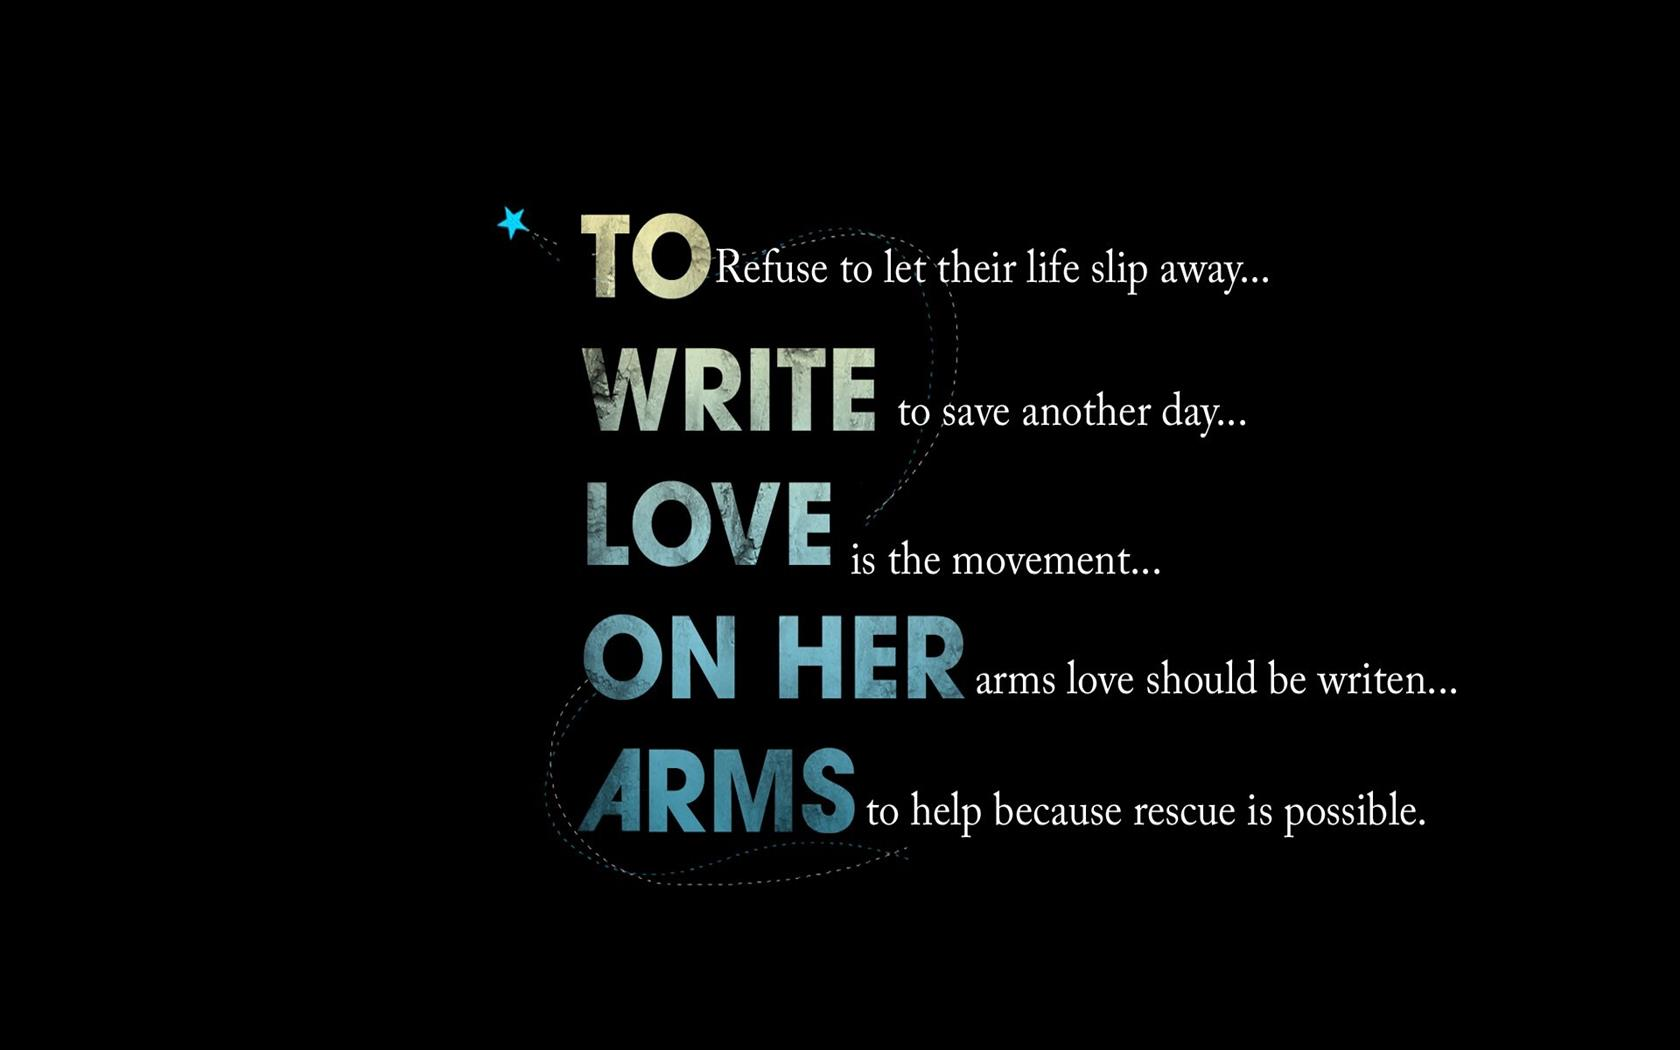 1680x1050 New Latest Thoughts and Quotes on Love Image Background